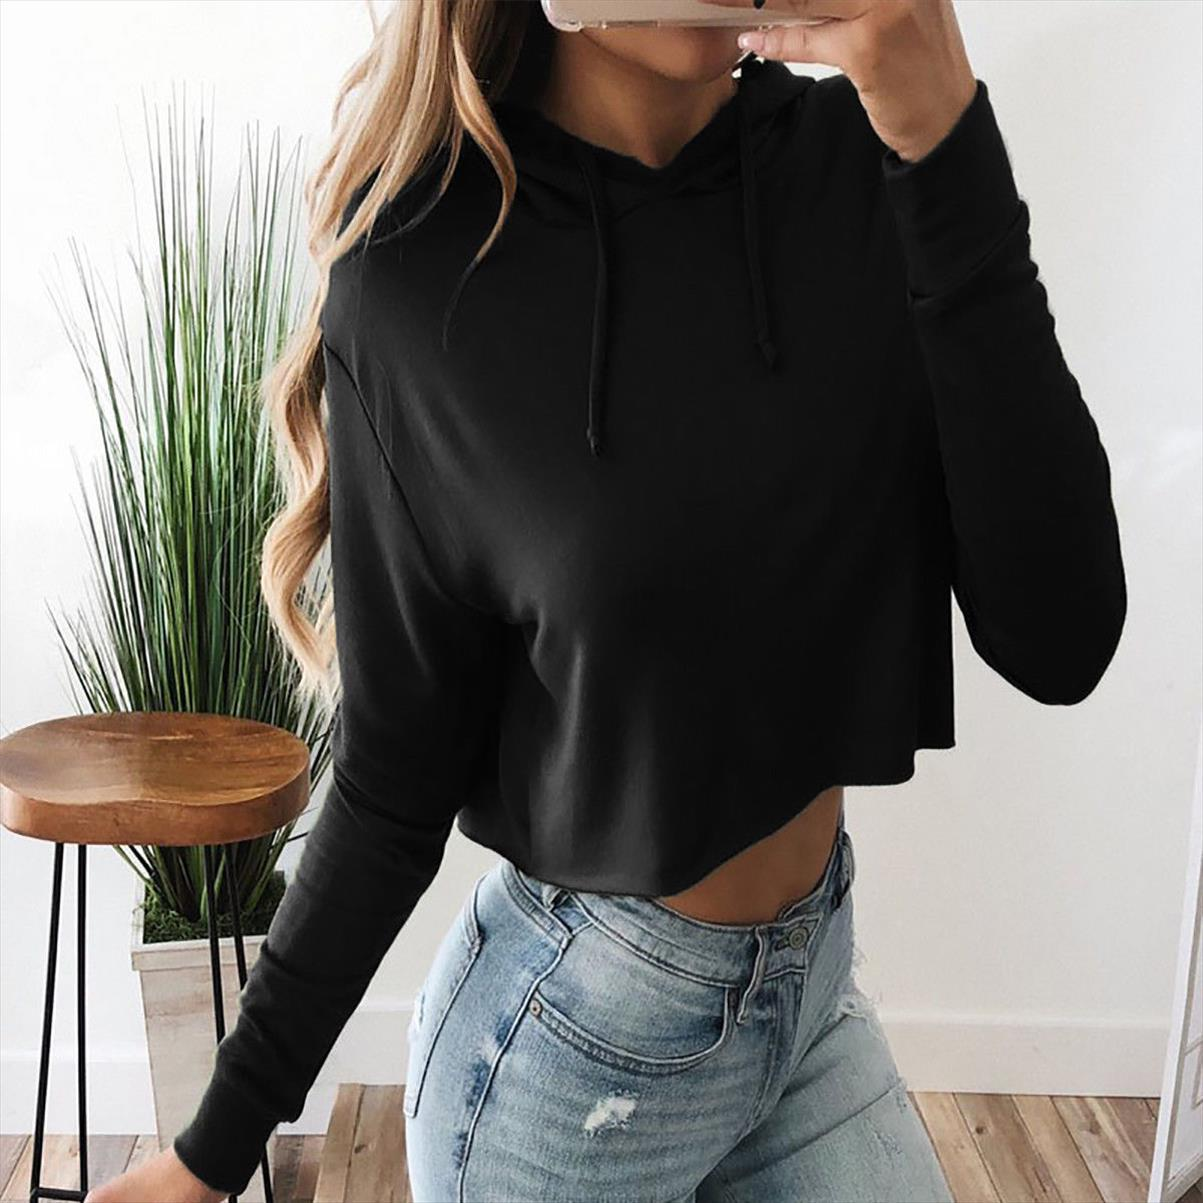 2020 NEW FASION Ladies Crop Hoodie Women Pull Over Plain Casual Short Hooded Sweat Shirt Top SALE